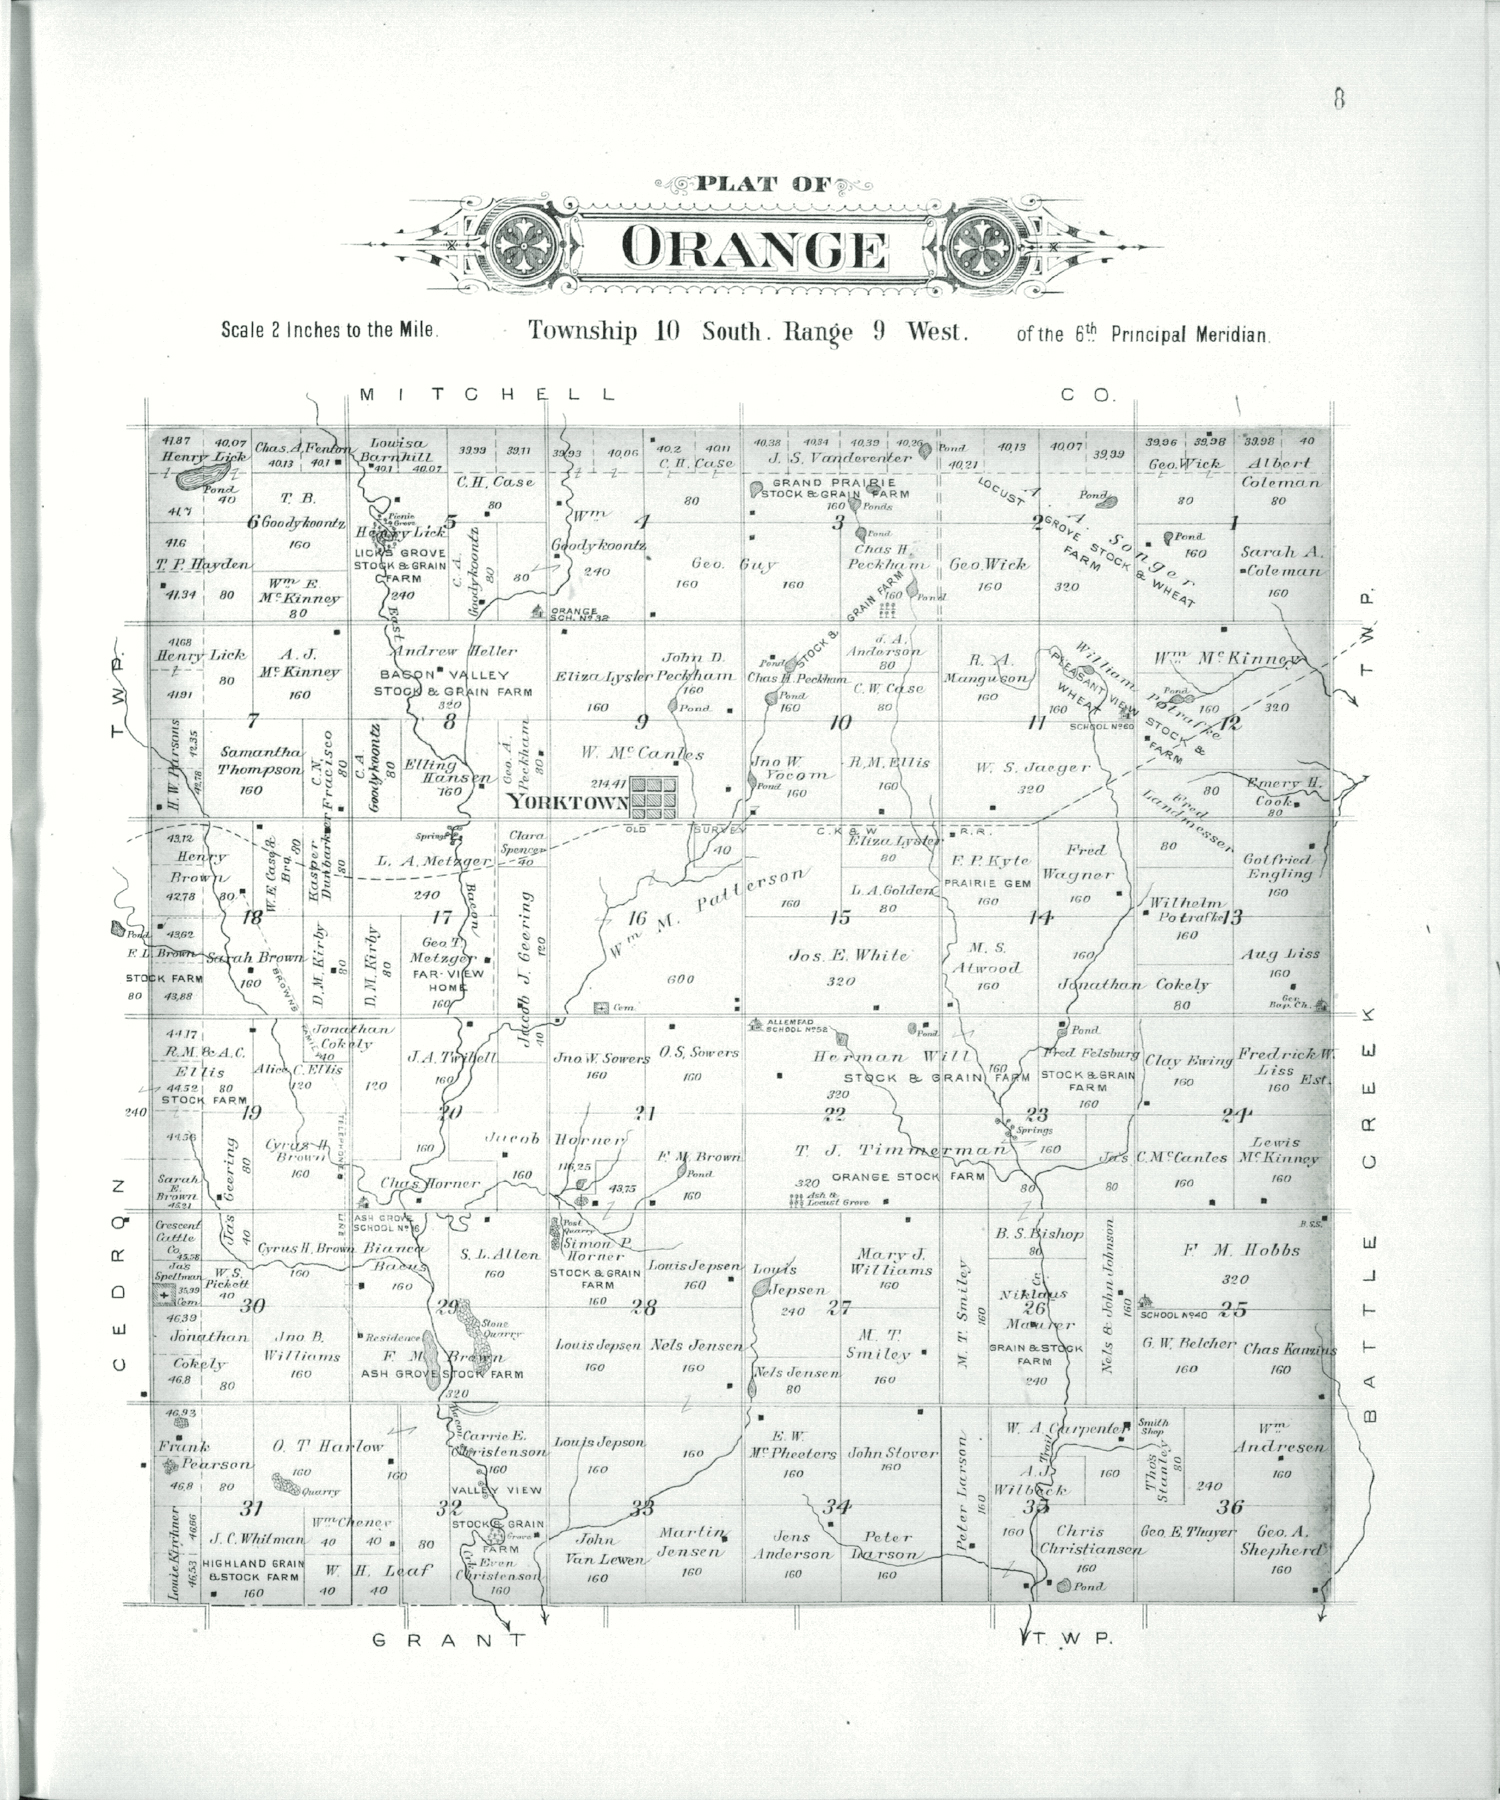 Plat book of Lincoln County, Kansas - 8